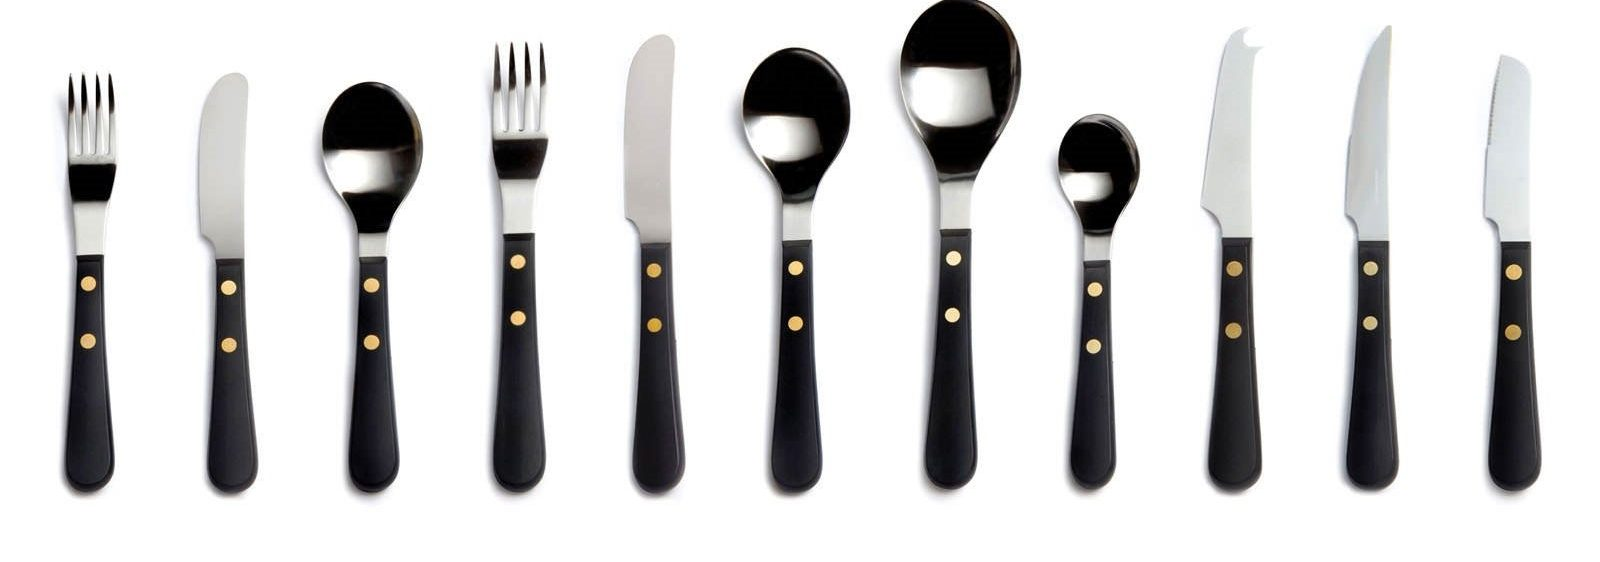 Provencal stainless steel cutlery, David Mellor